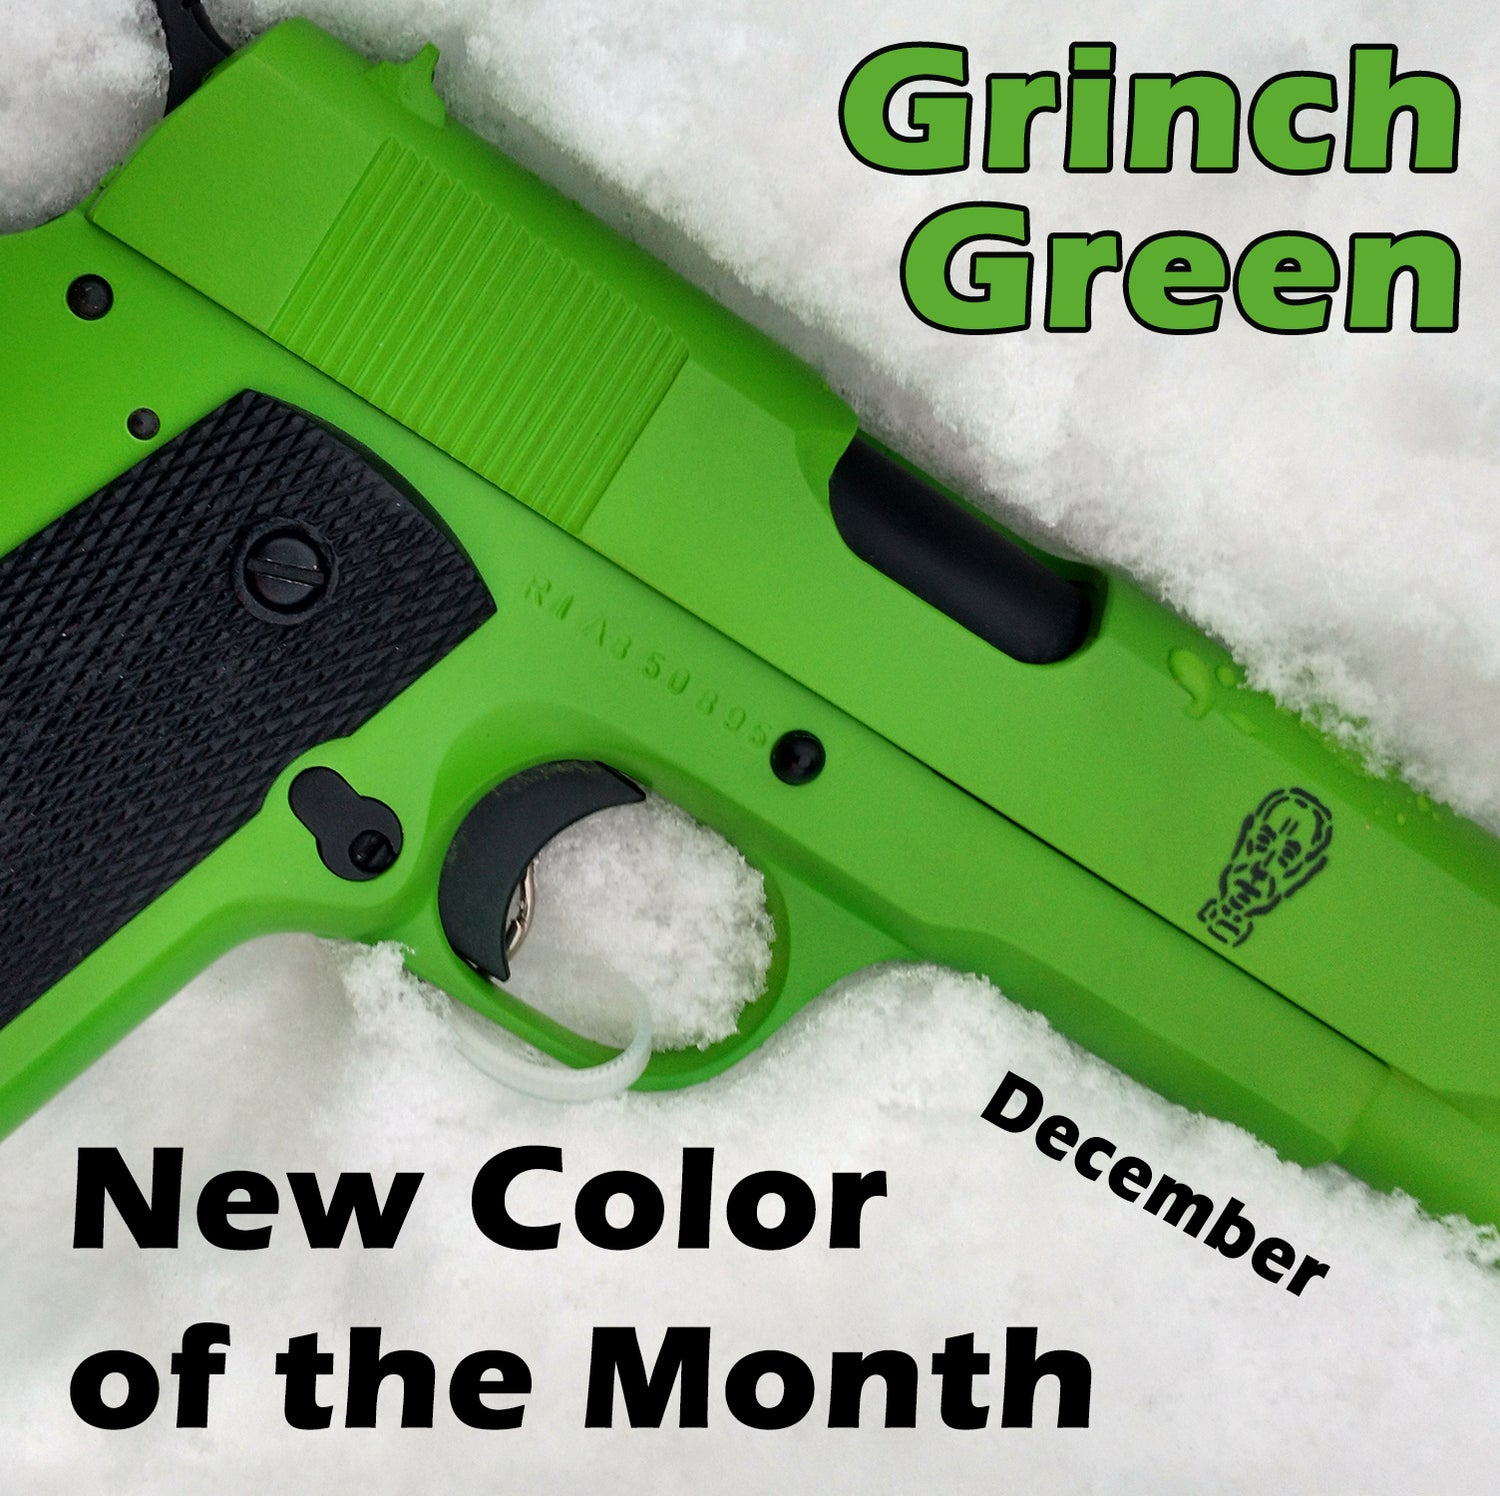 Grinch Green - DECEMBER New Color of the Month